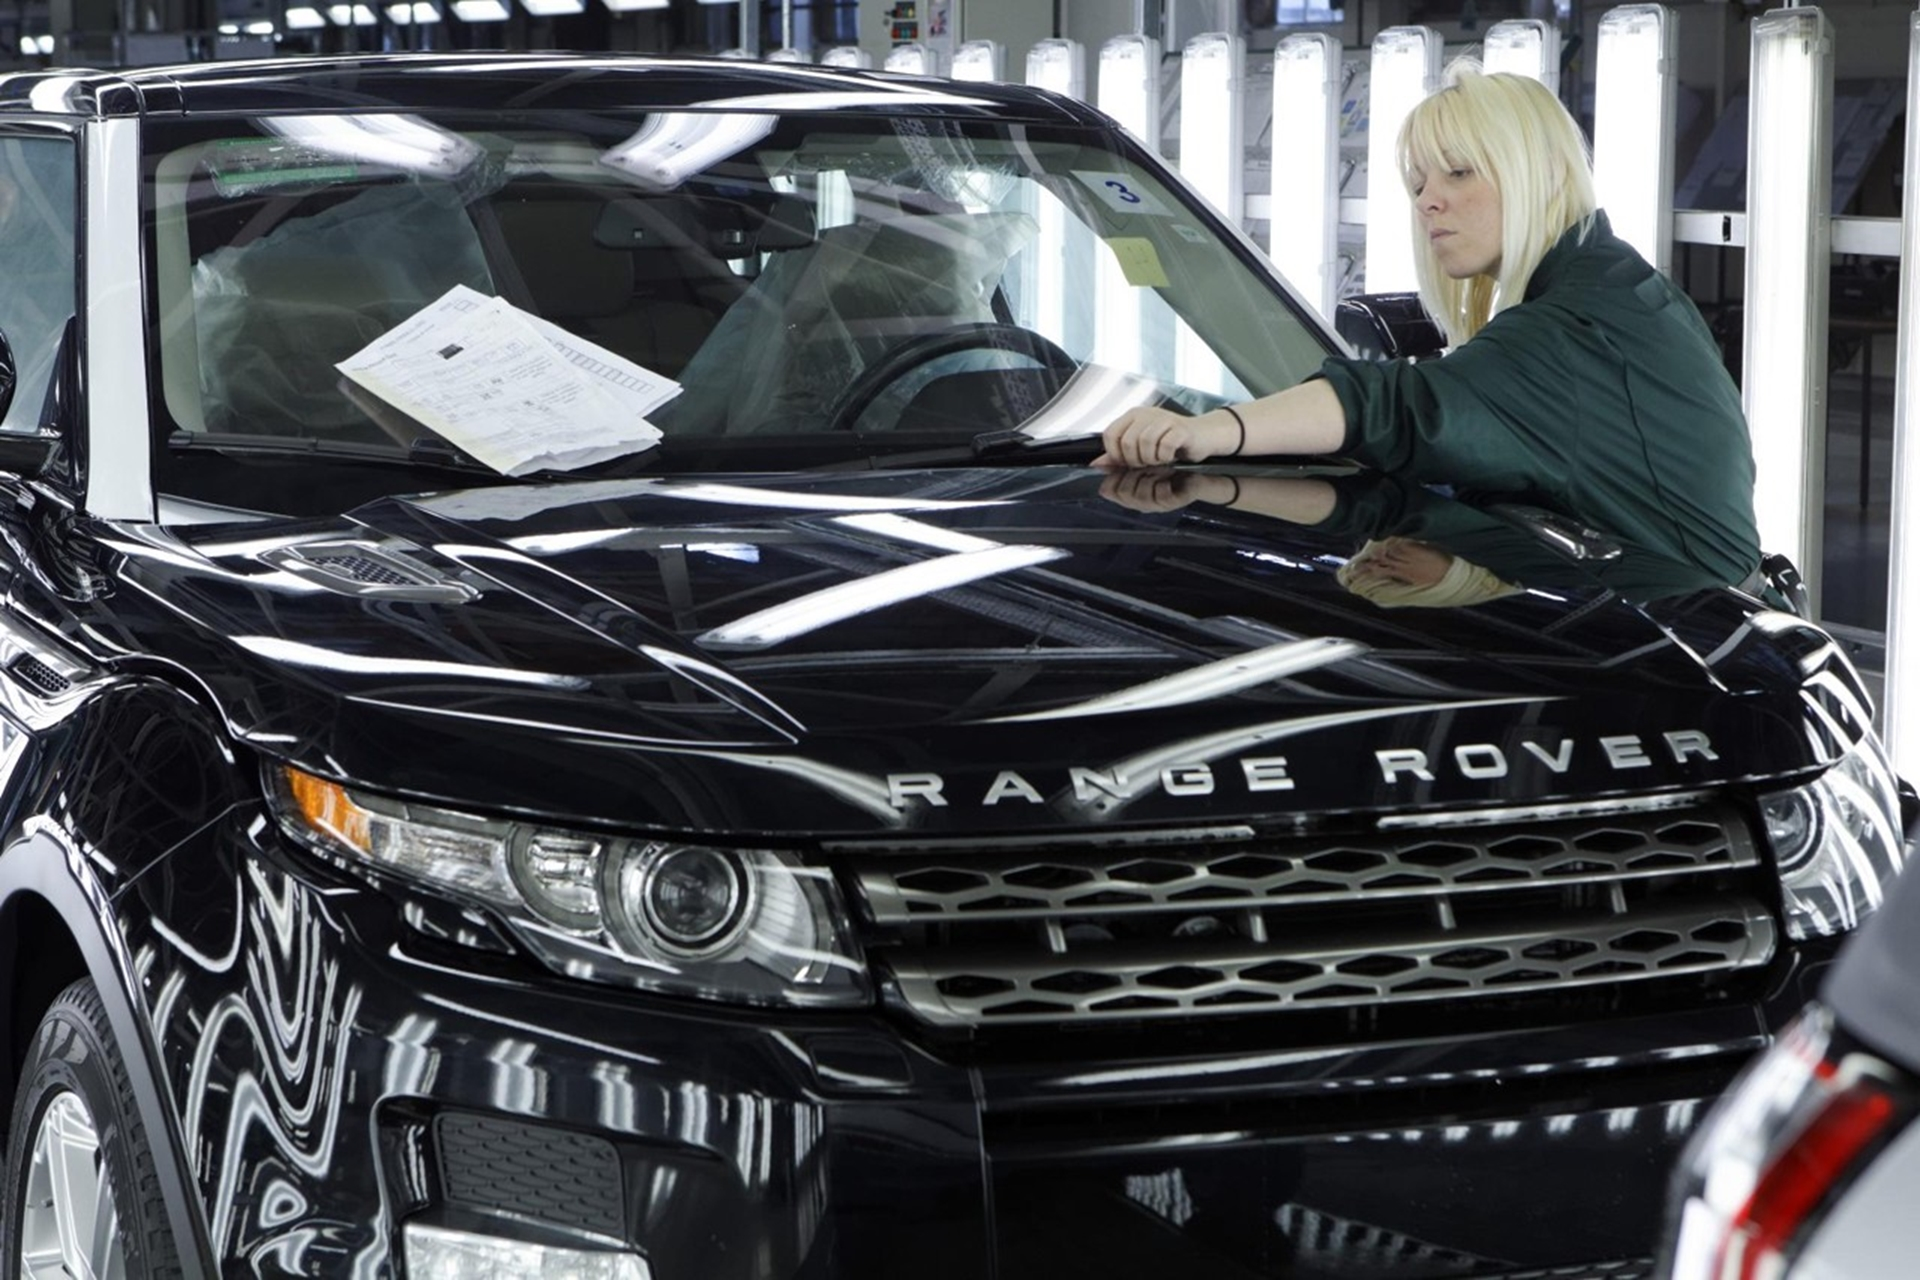 Land Rover Evoque production